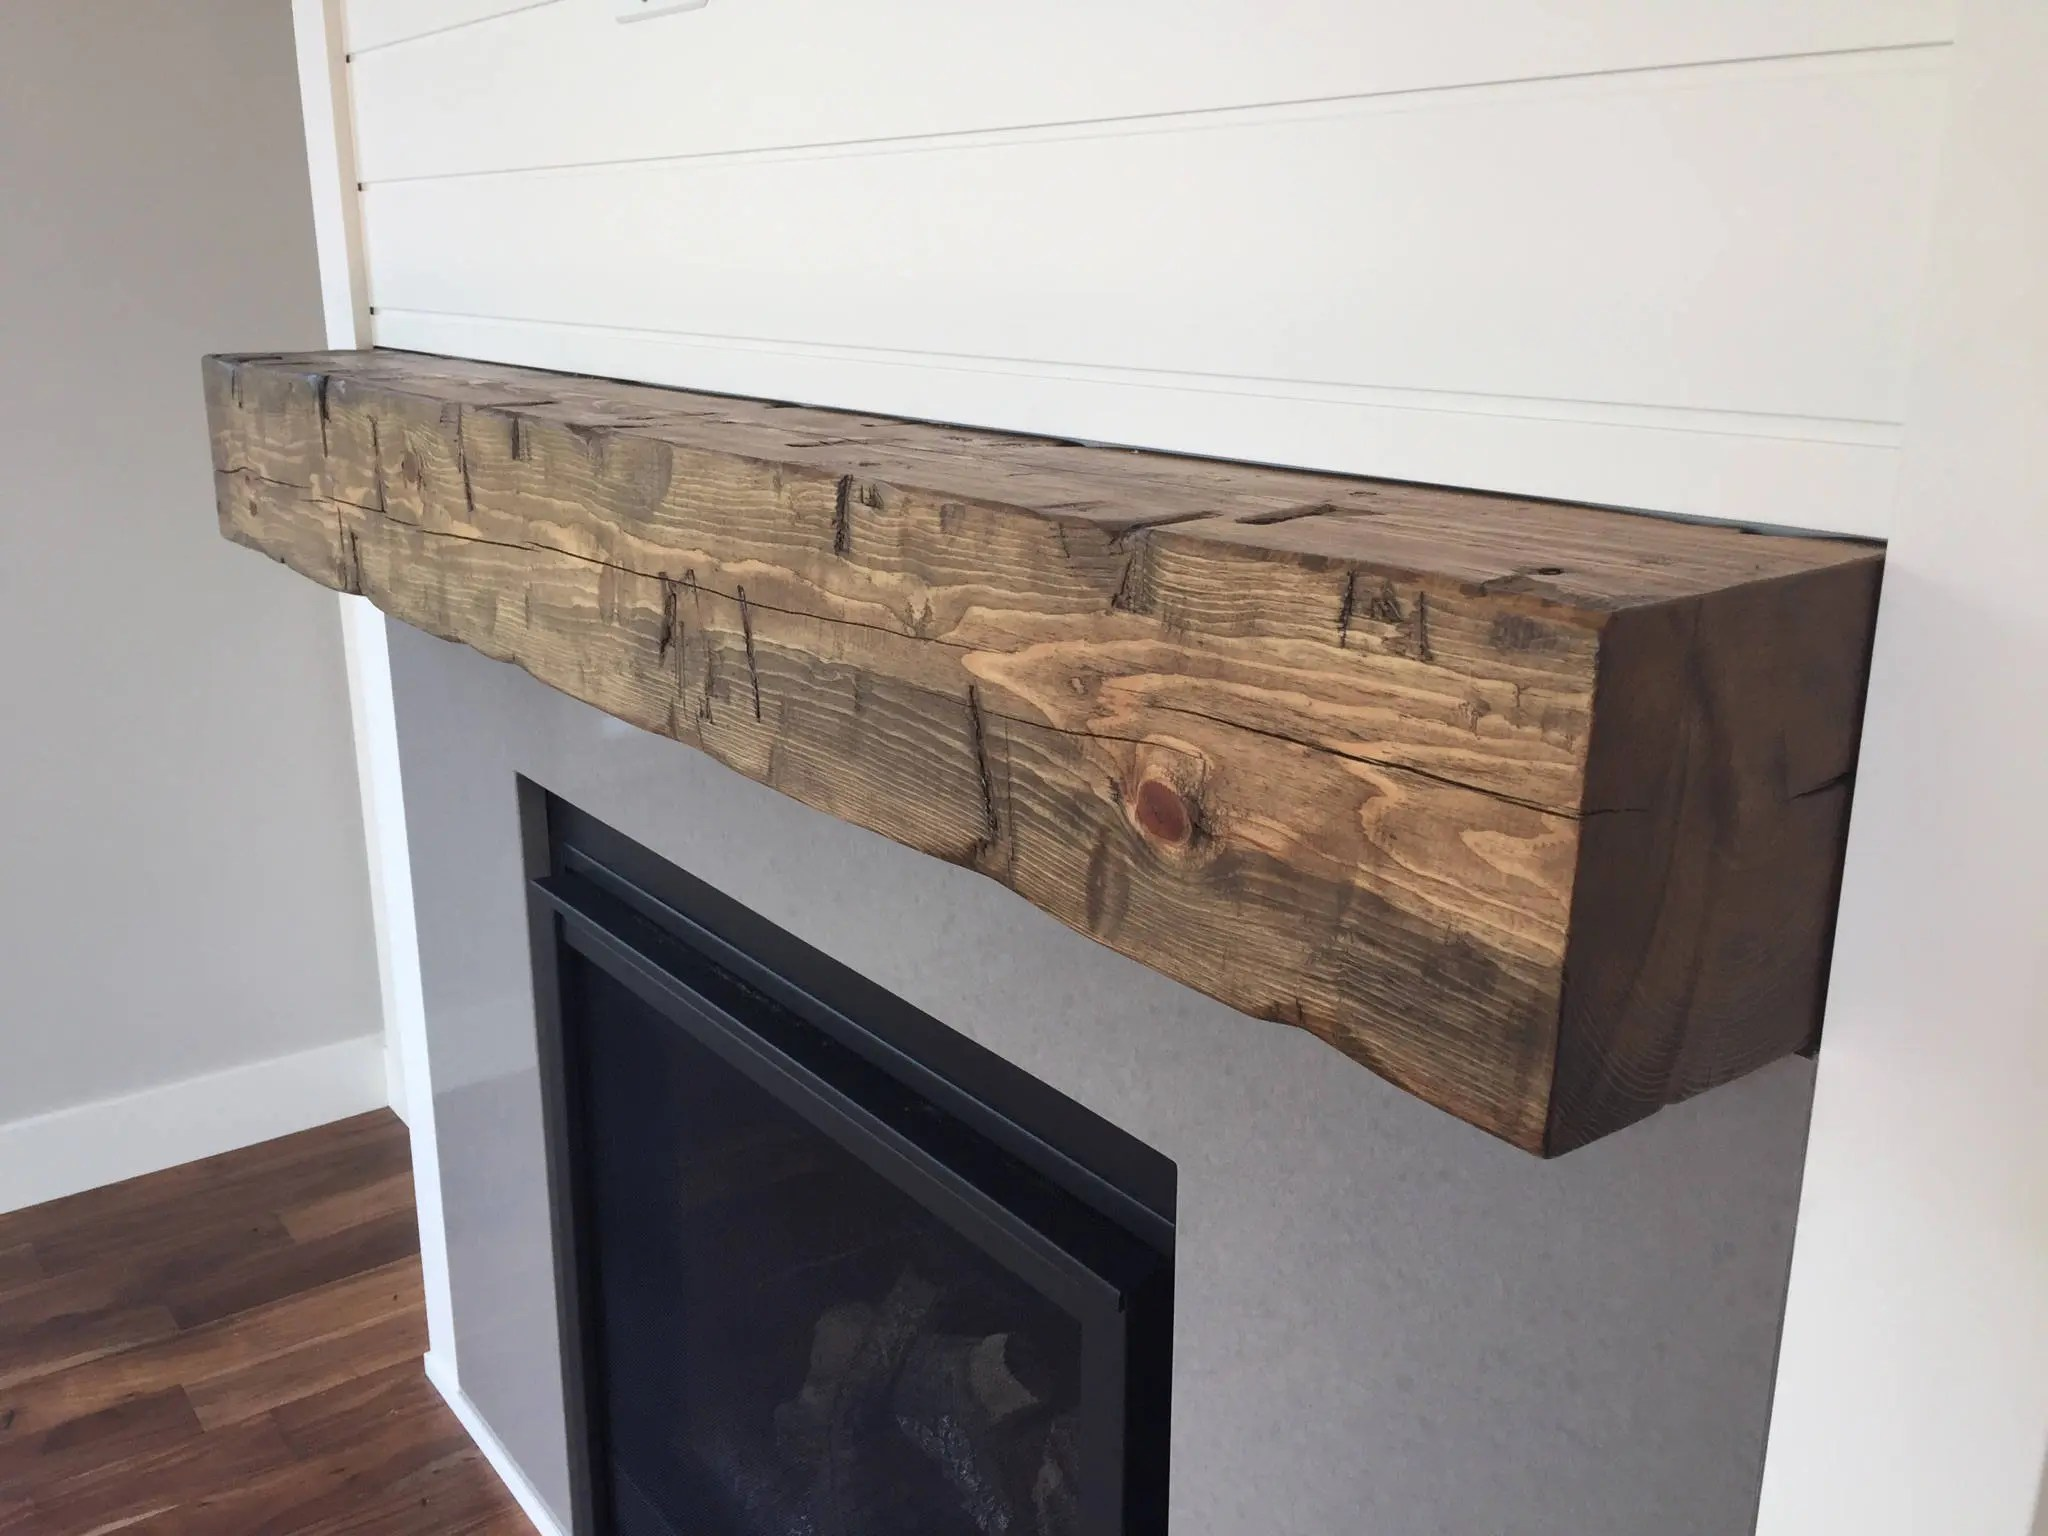 Fireplace Beam Mantel Fireplace Mantel Barn Beam Mantel Wooden Beam Mantel 8